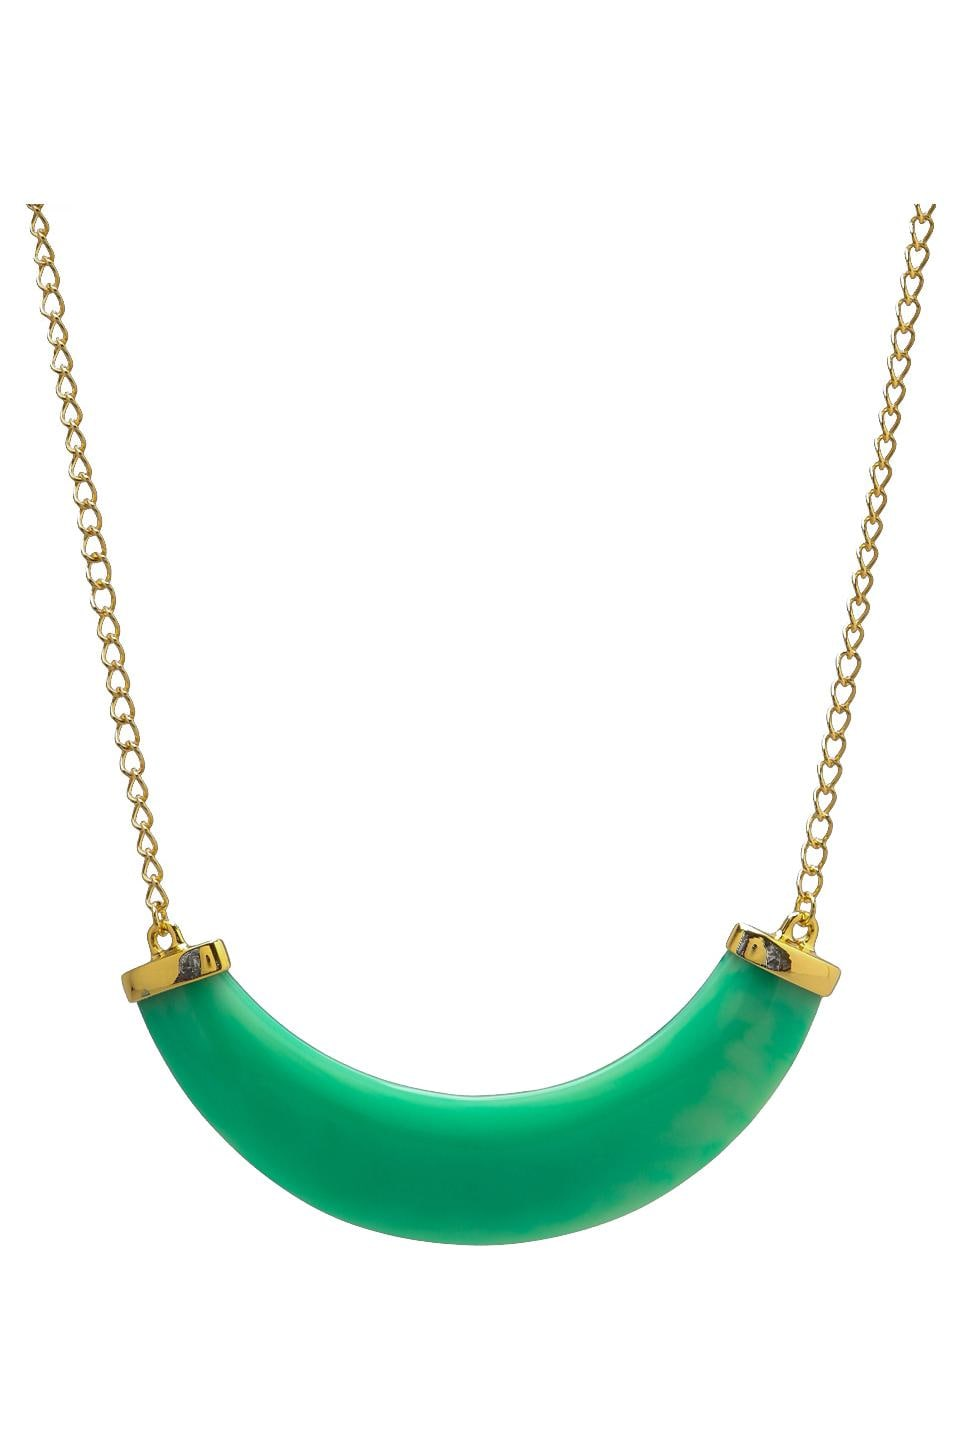 Kenneth Jay Lane Polished Gold/Jade Resin Bib Necklace Light Mint